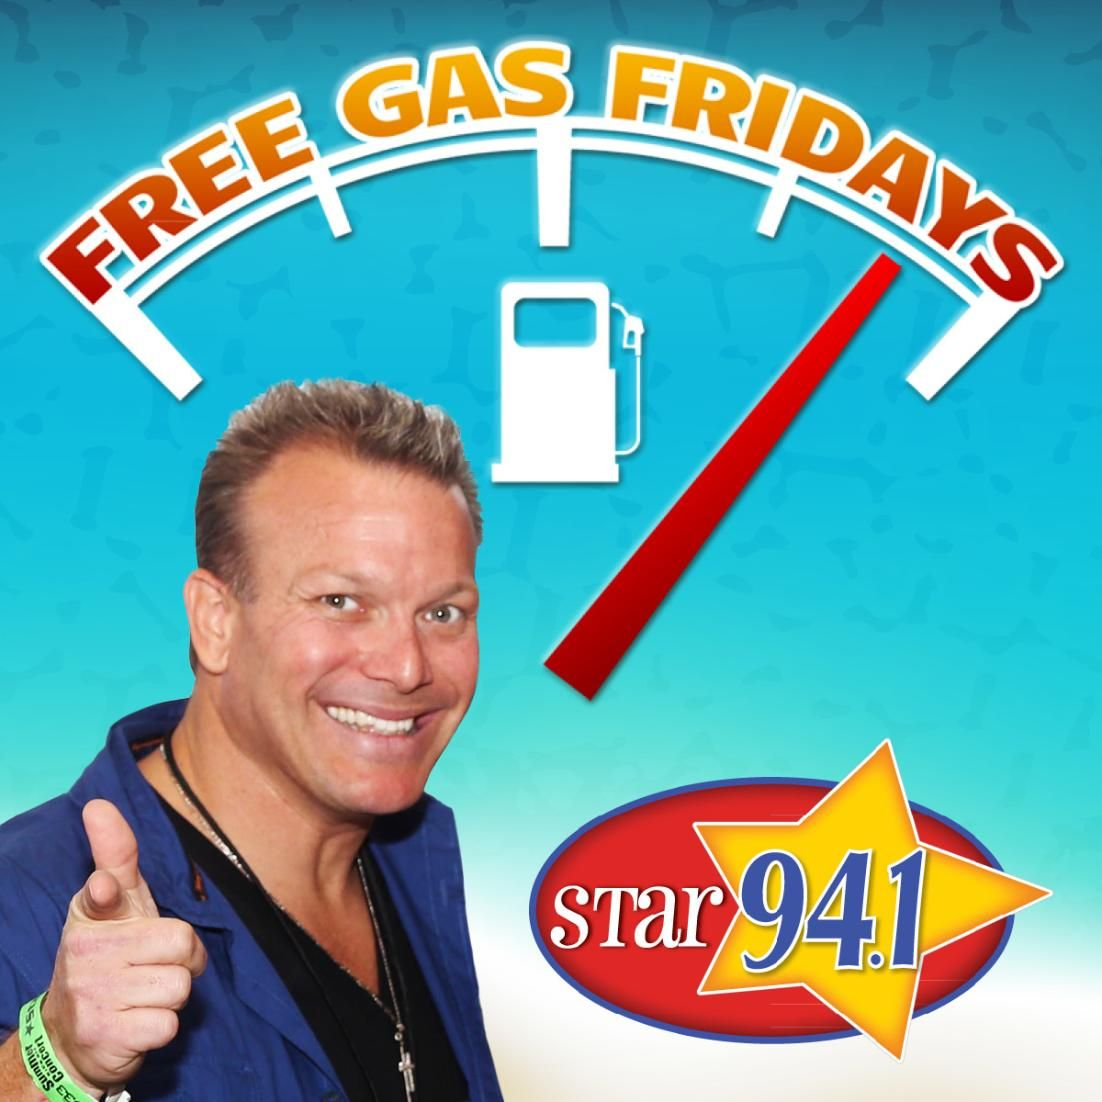 Free Gas Fridays Are Here Star941 S Cabana Boy Geoff Will Be At Mossy Nissan Chula Vista Tomorrow 6 7 19 From 4 5pm Giving O Nissan Free Gas New Nissan